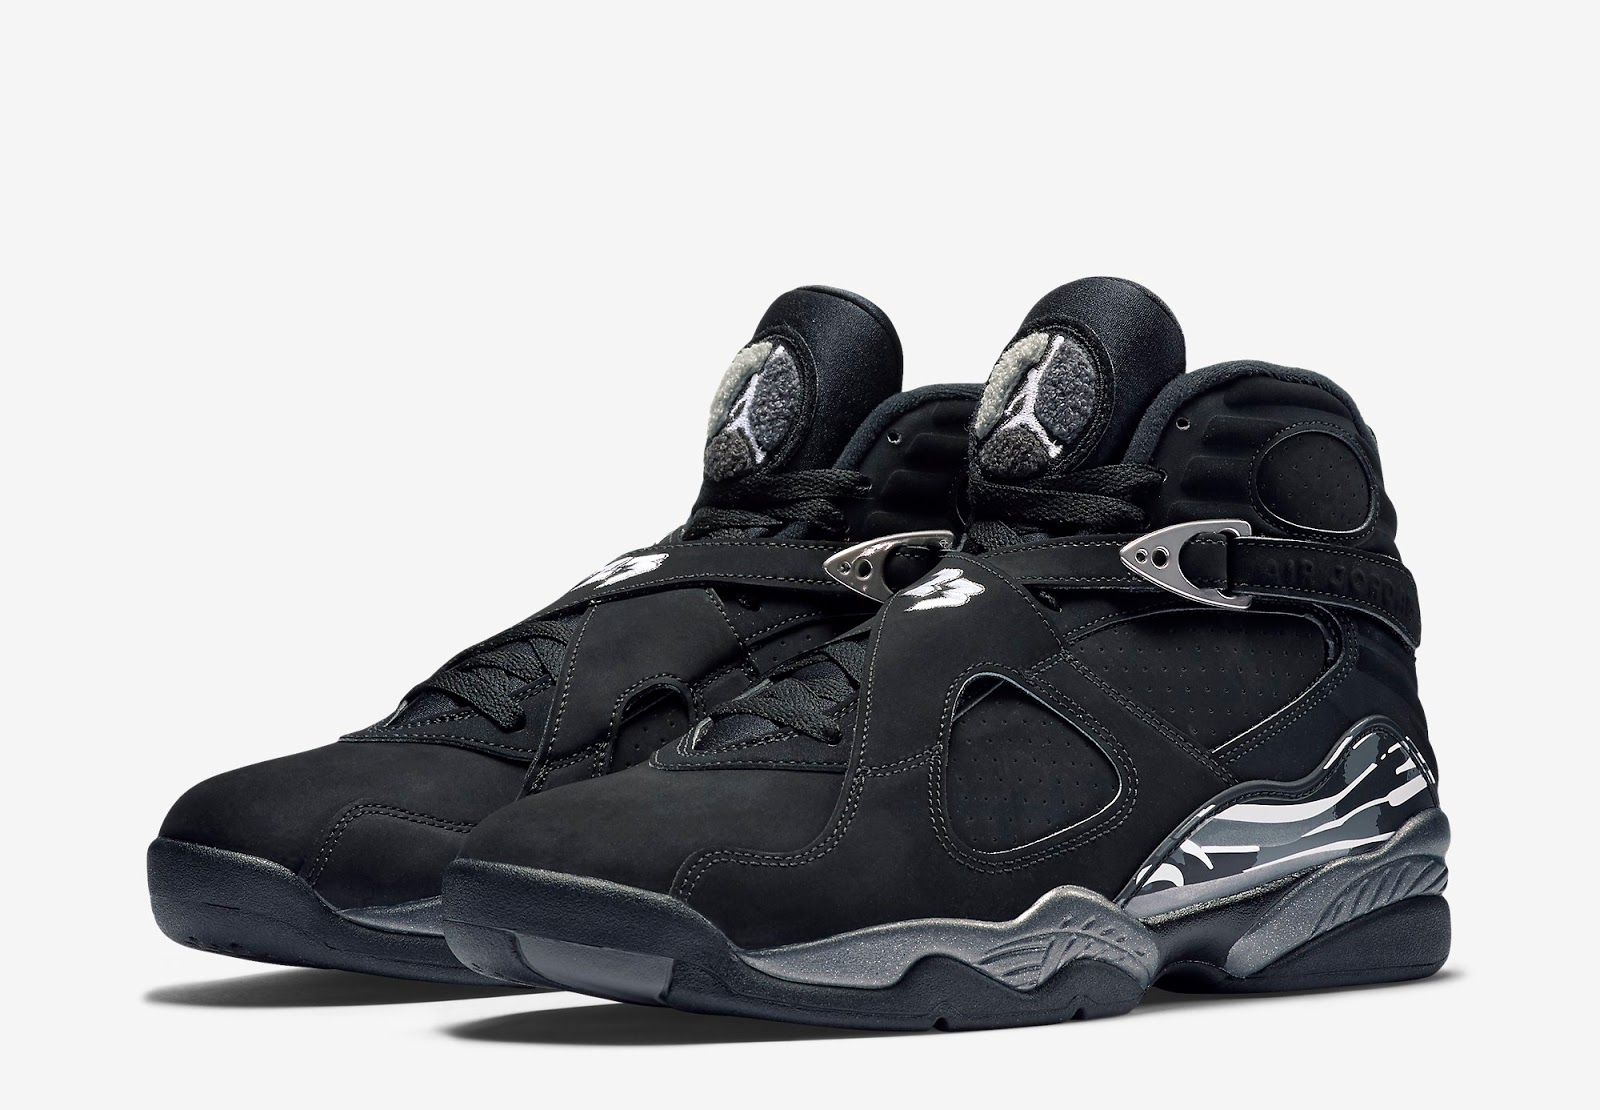 new arrival 46b2a e0669 Air Jordan 8 Retro